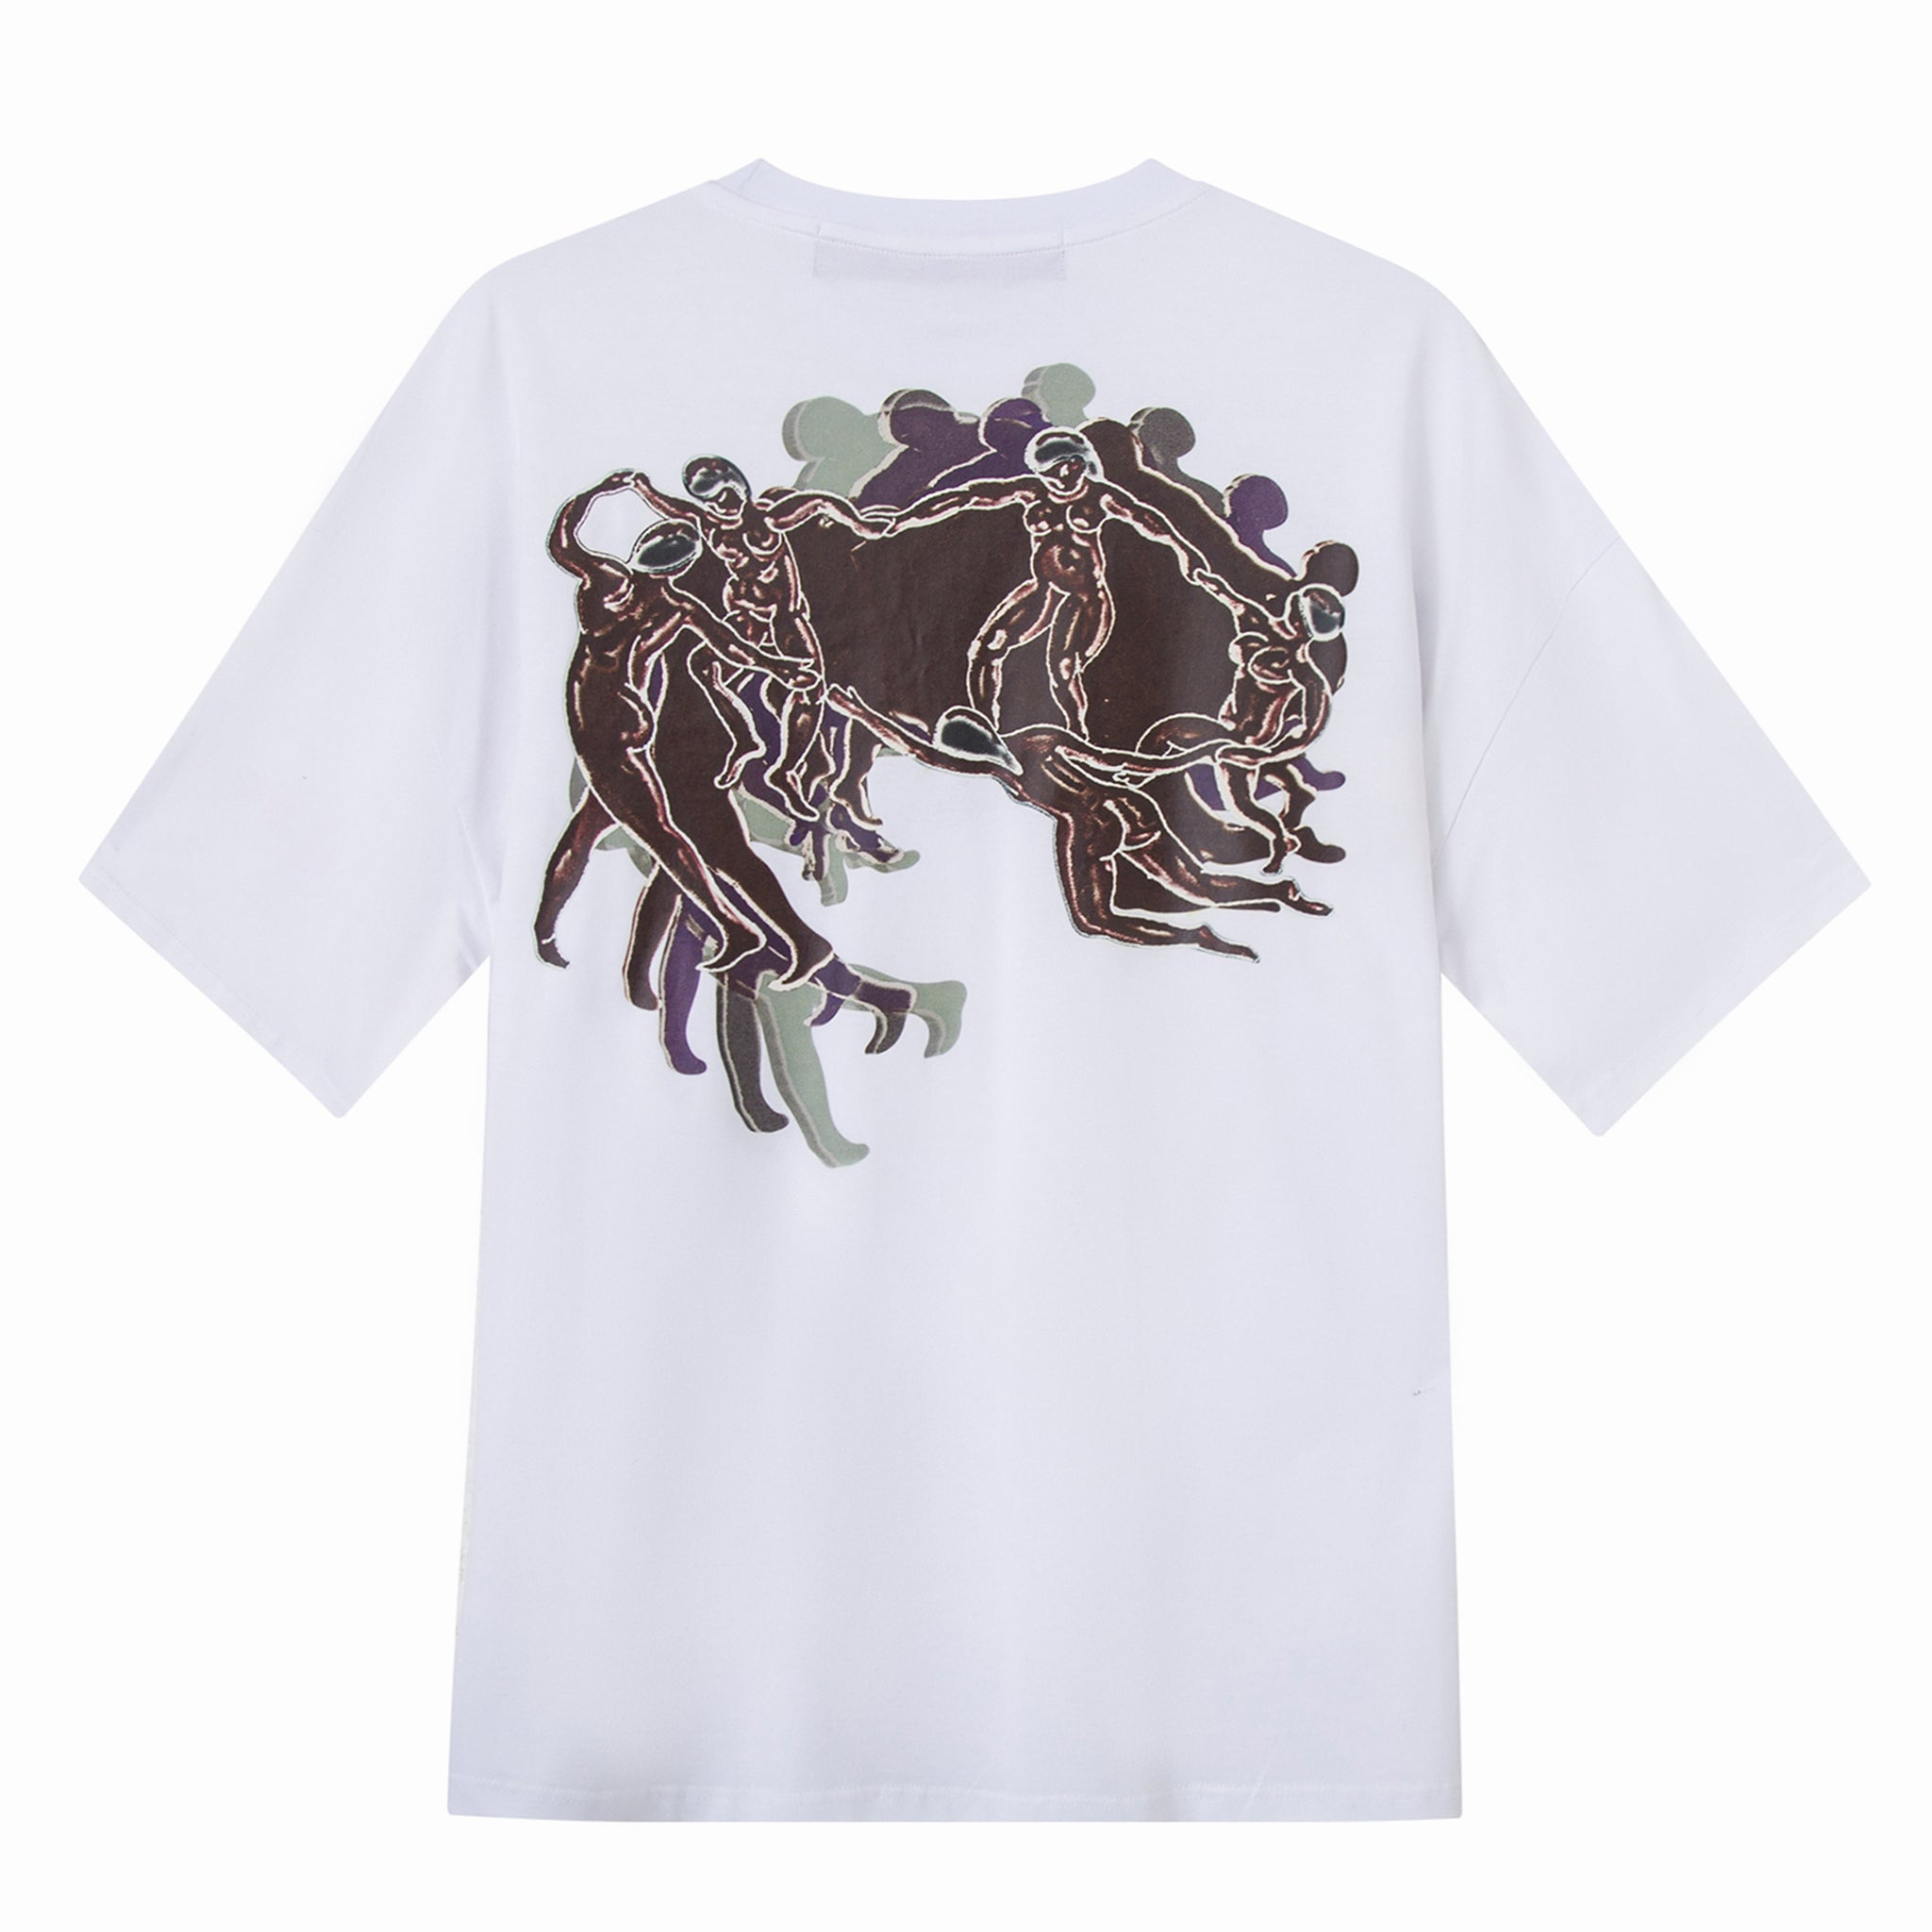 Load image into Gallery viewer, Le Fruit Defendu Ring Dance T-Shirt - White